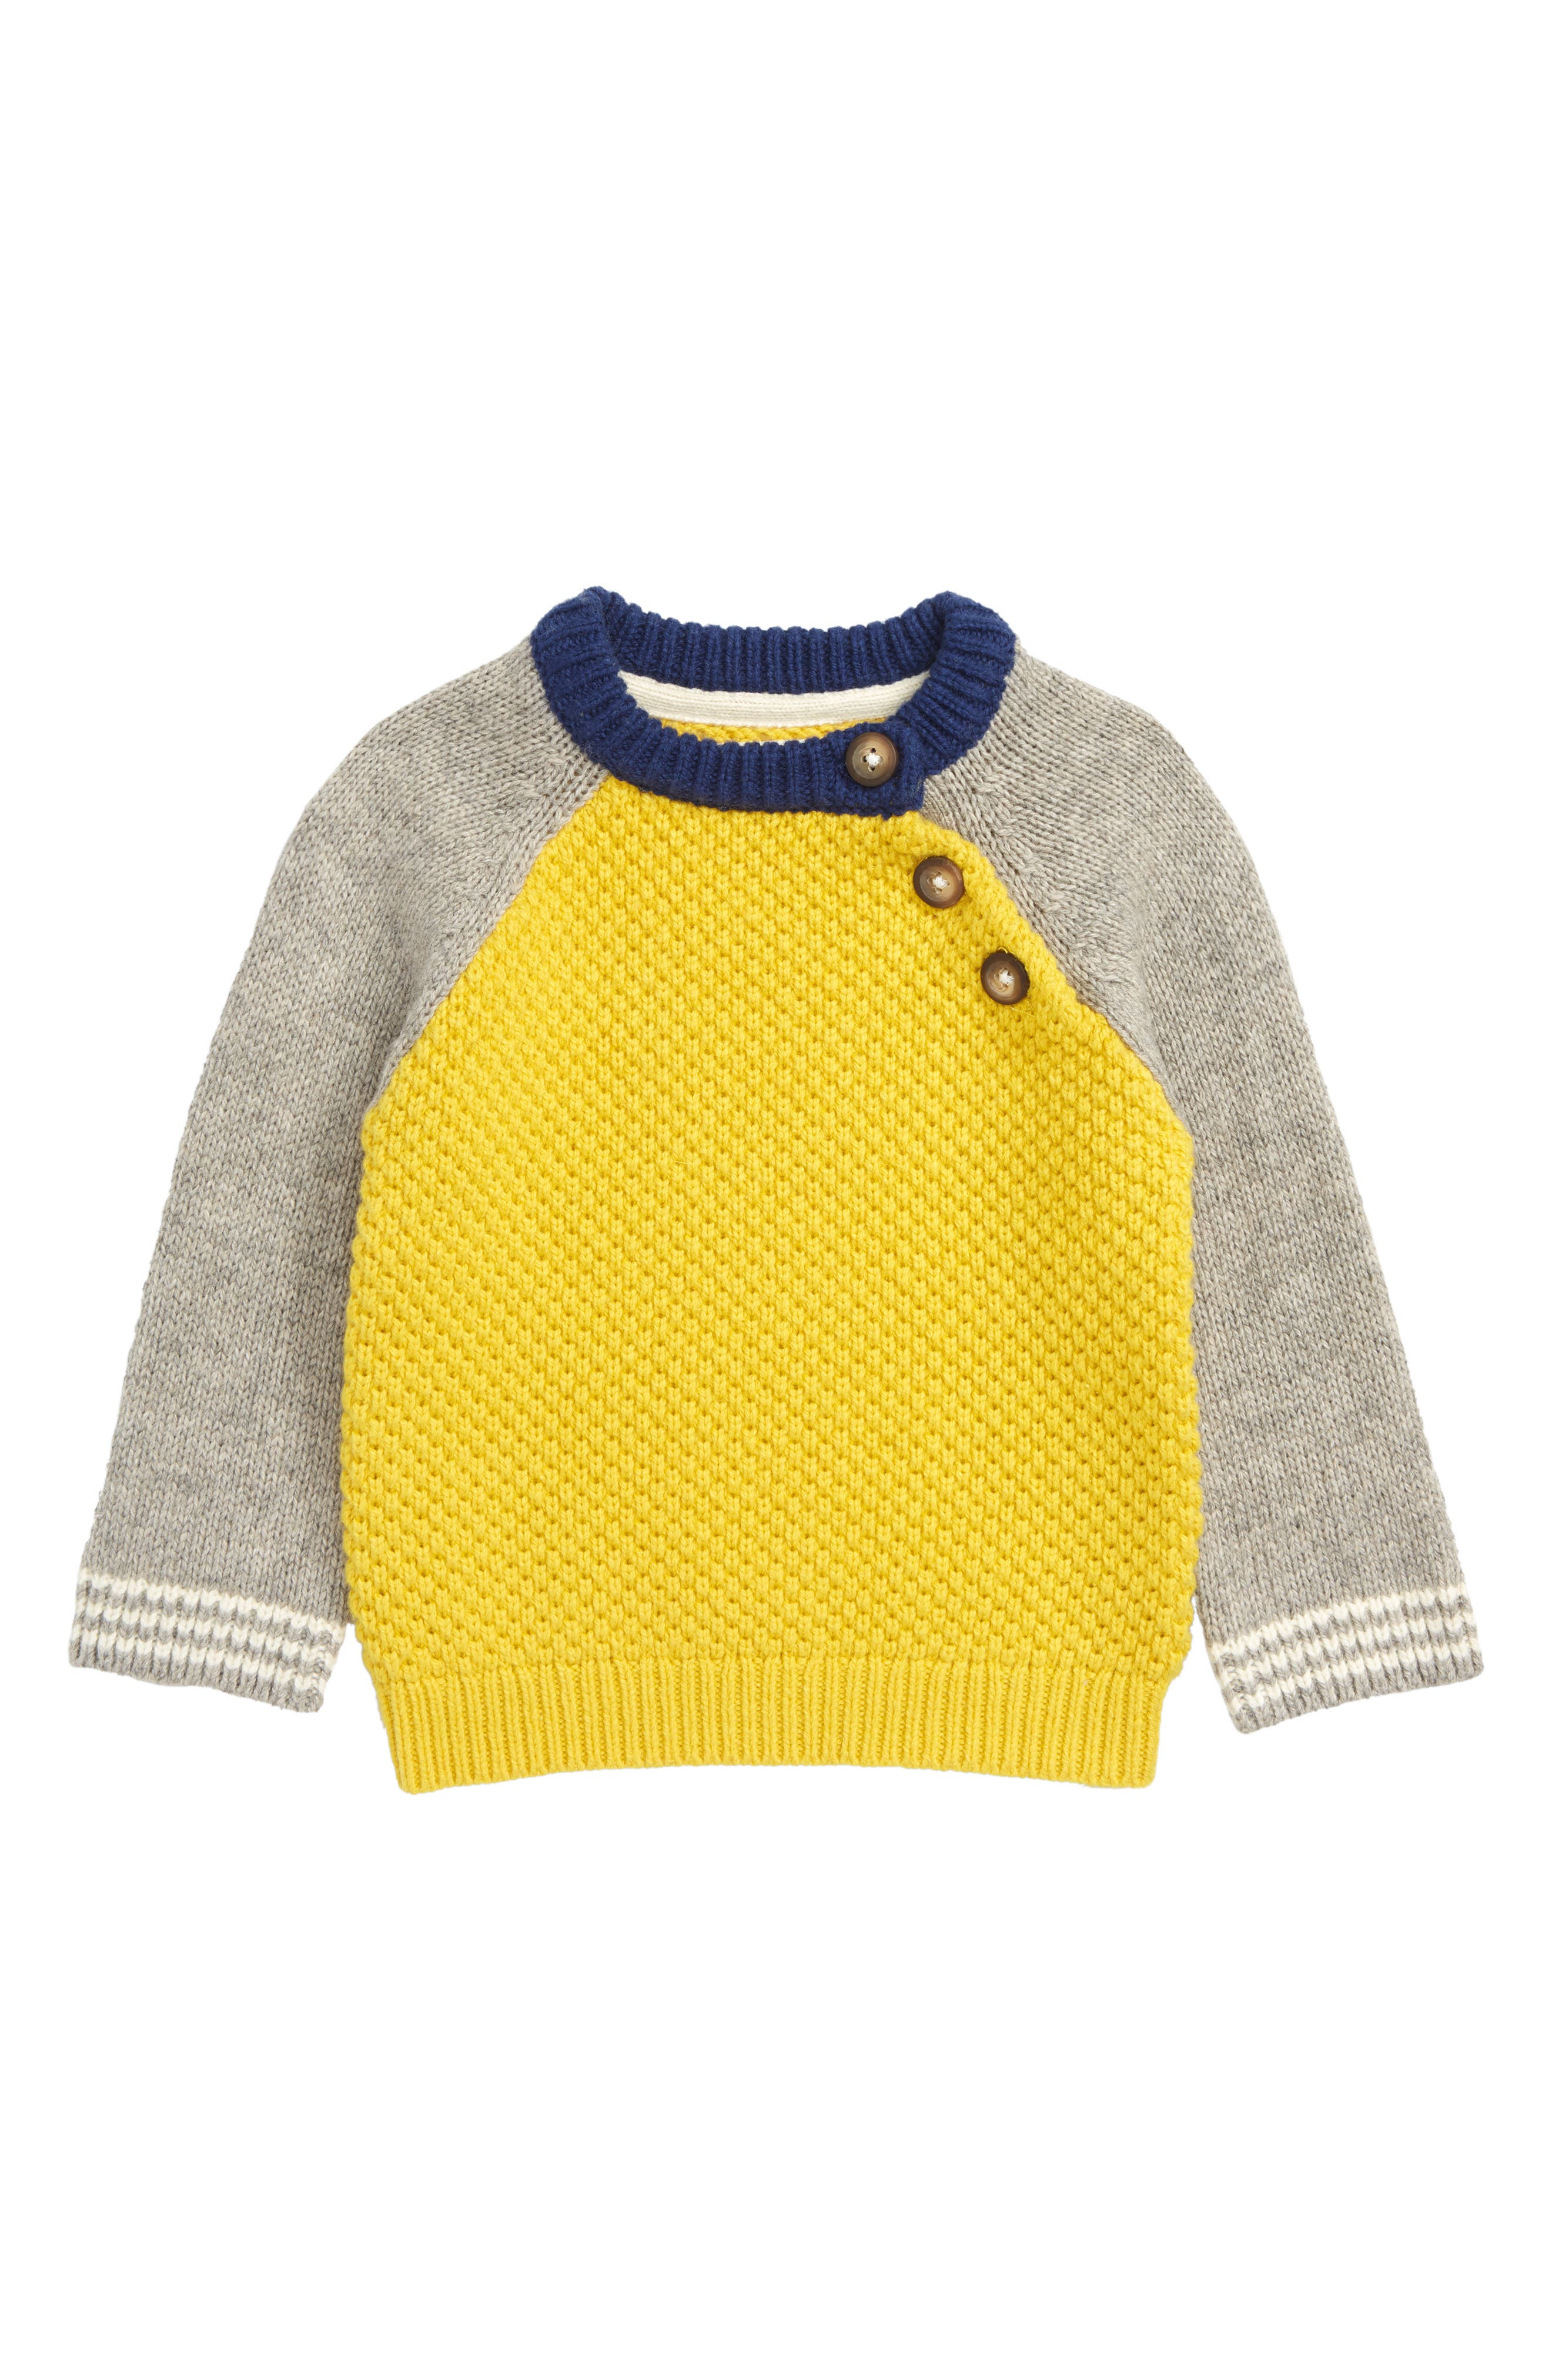 Hotchpotch Knit Sweater,                             Main thumbnail 1, color,                             724